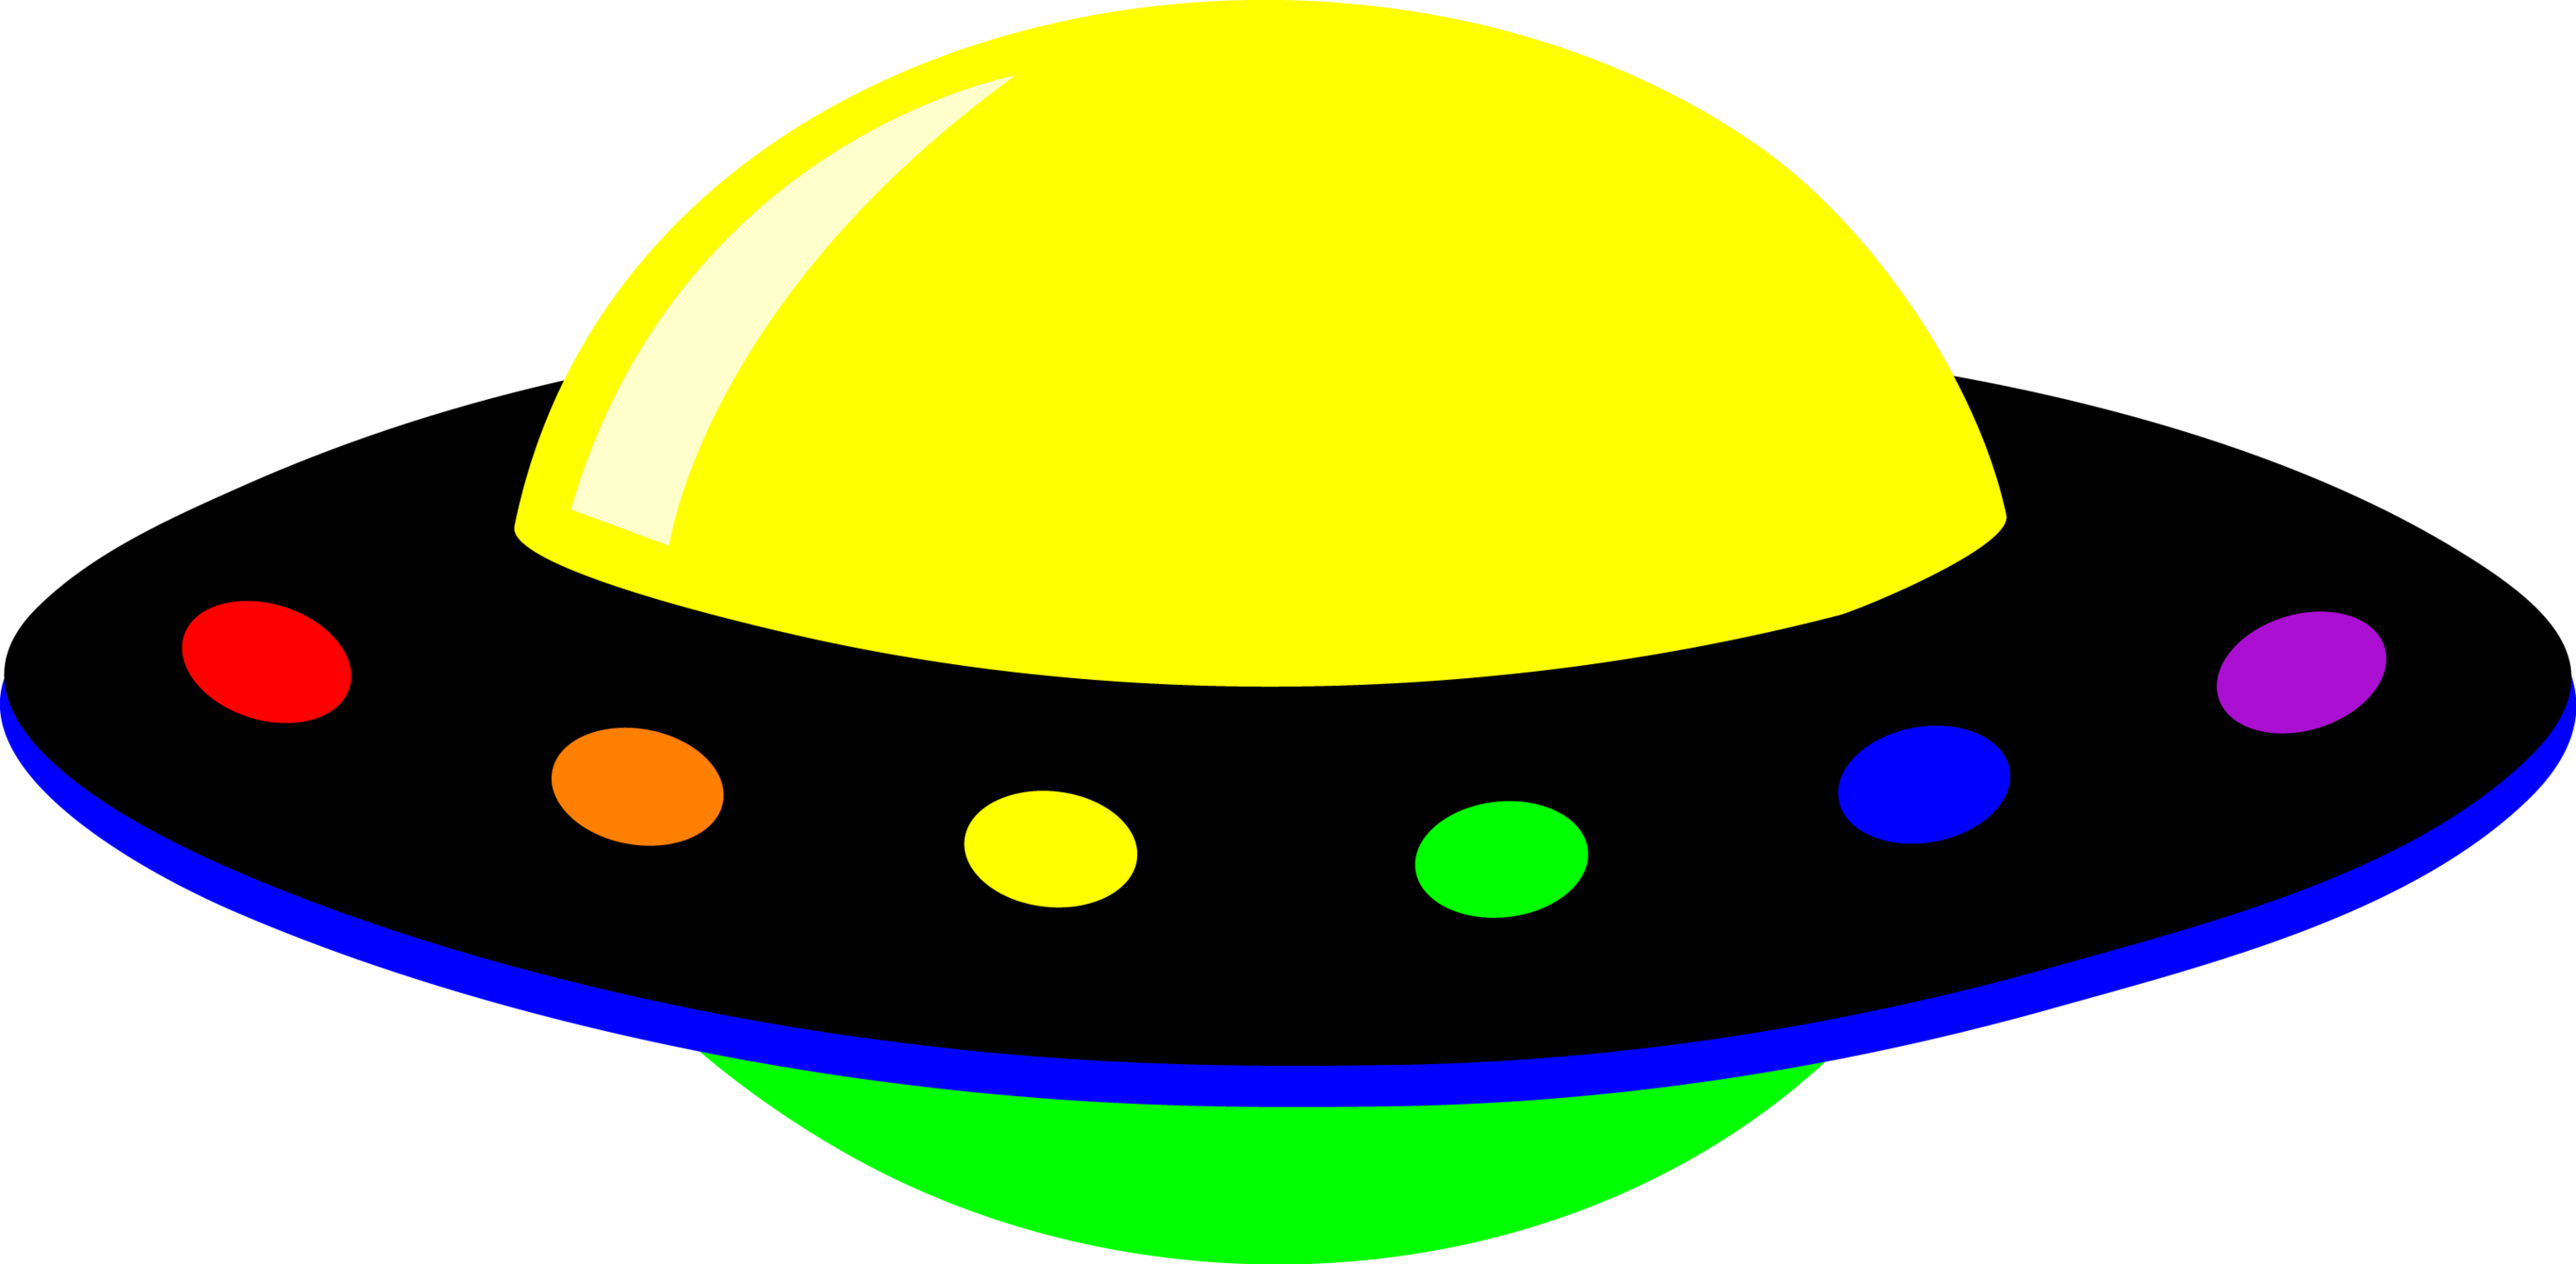 2963x1454 Spaceship Clipart Animated